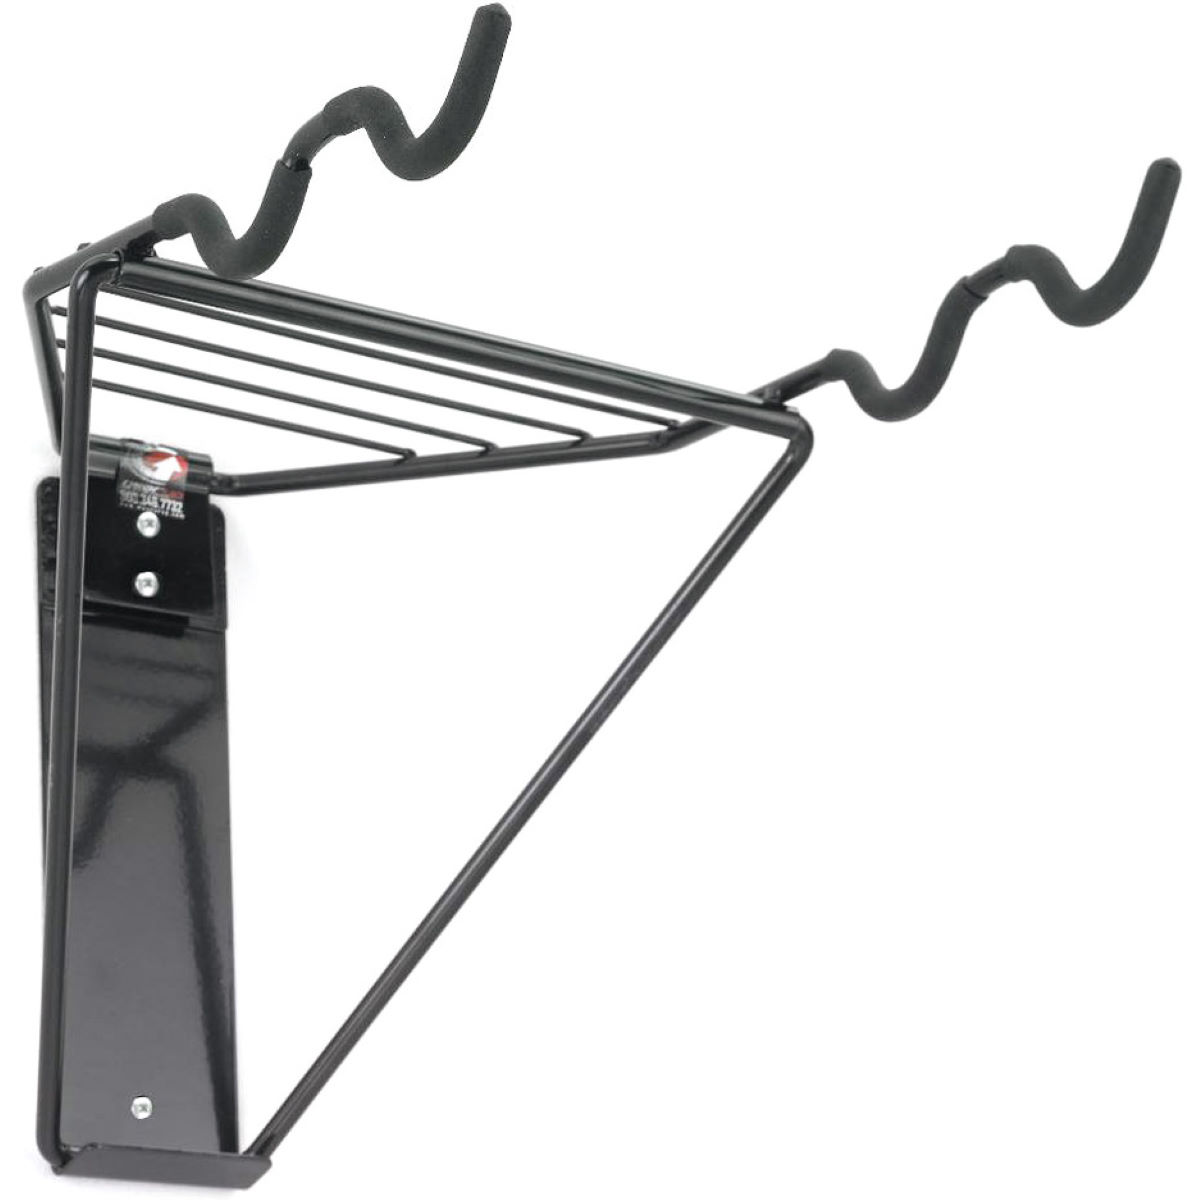 Gear Up Off-the-Wall 2-Bike Horizontal Rack - Soportes para bicicleta